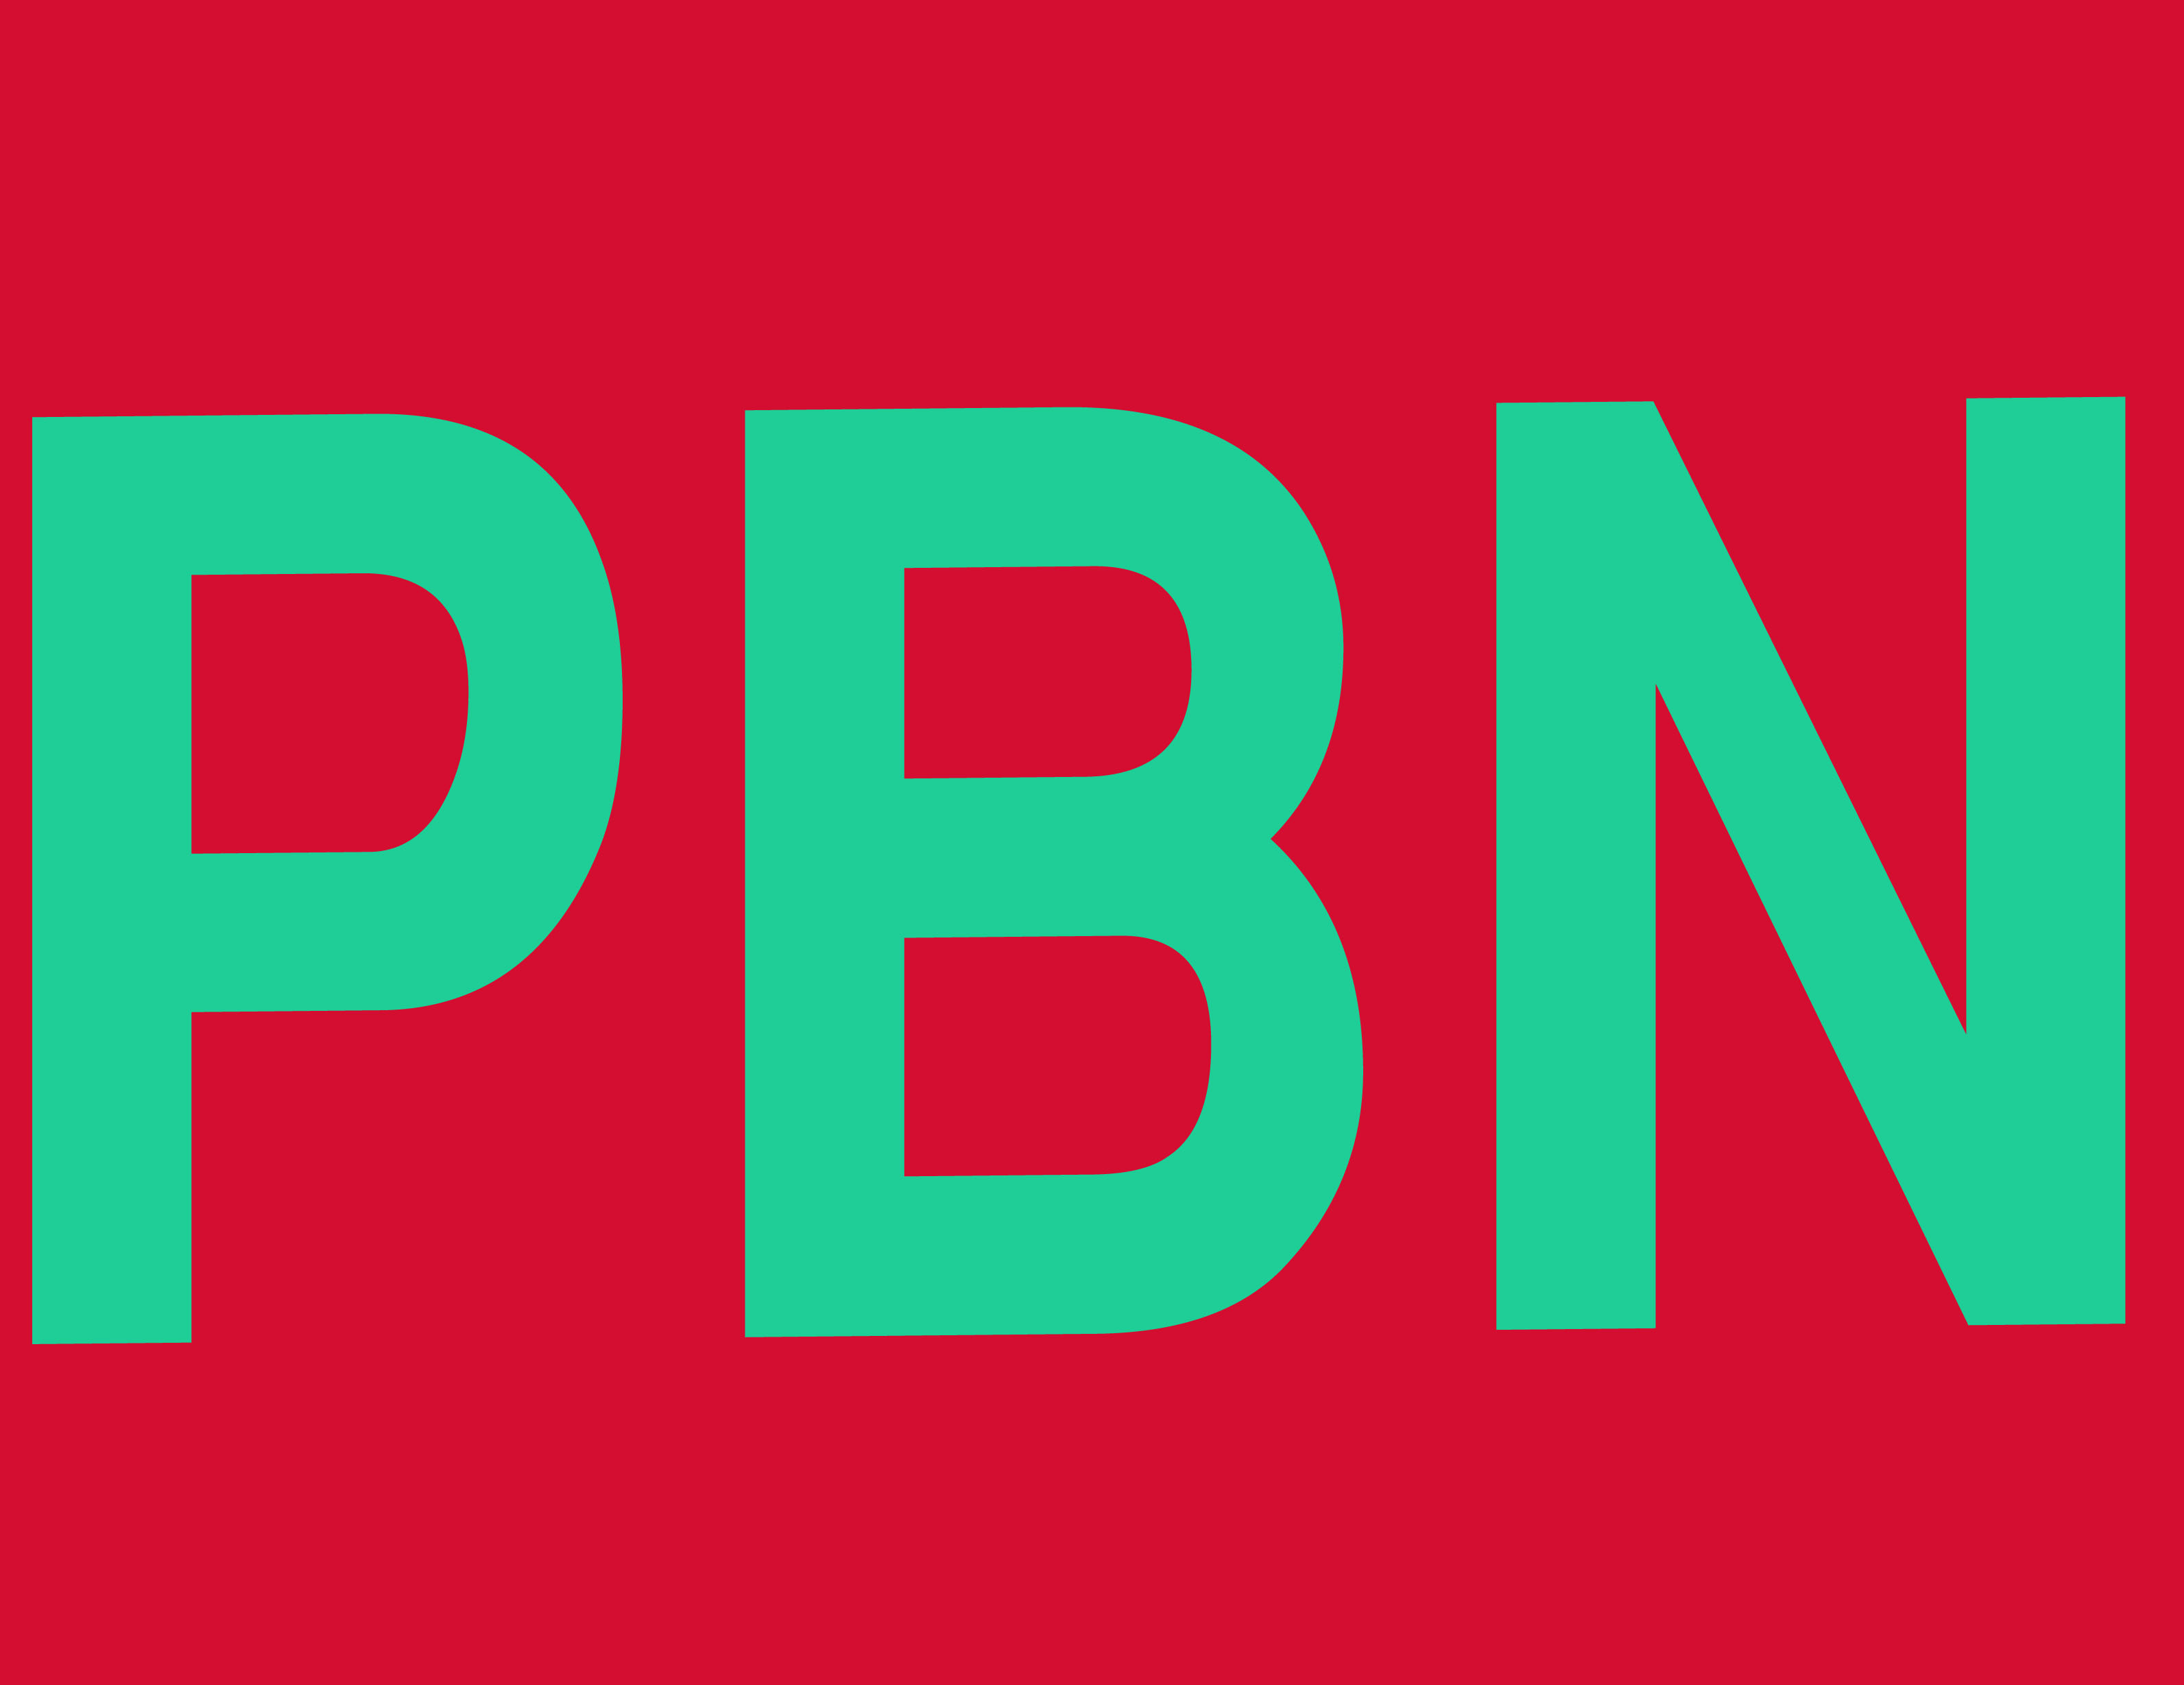 increase domain authority 80 PBN Backlink da to 70 plus and 55 to 60